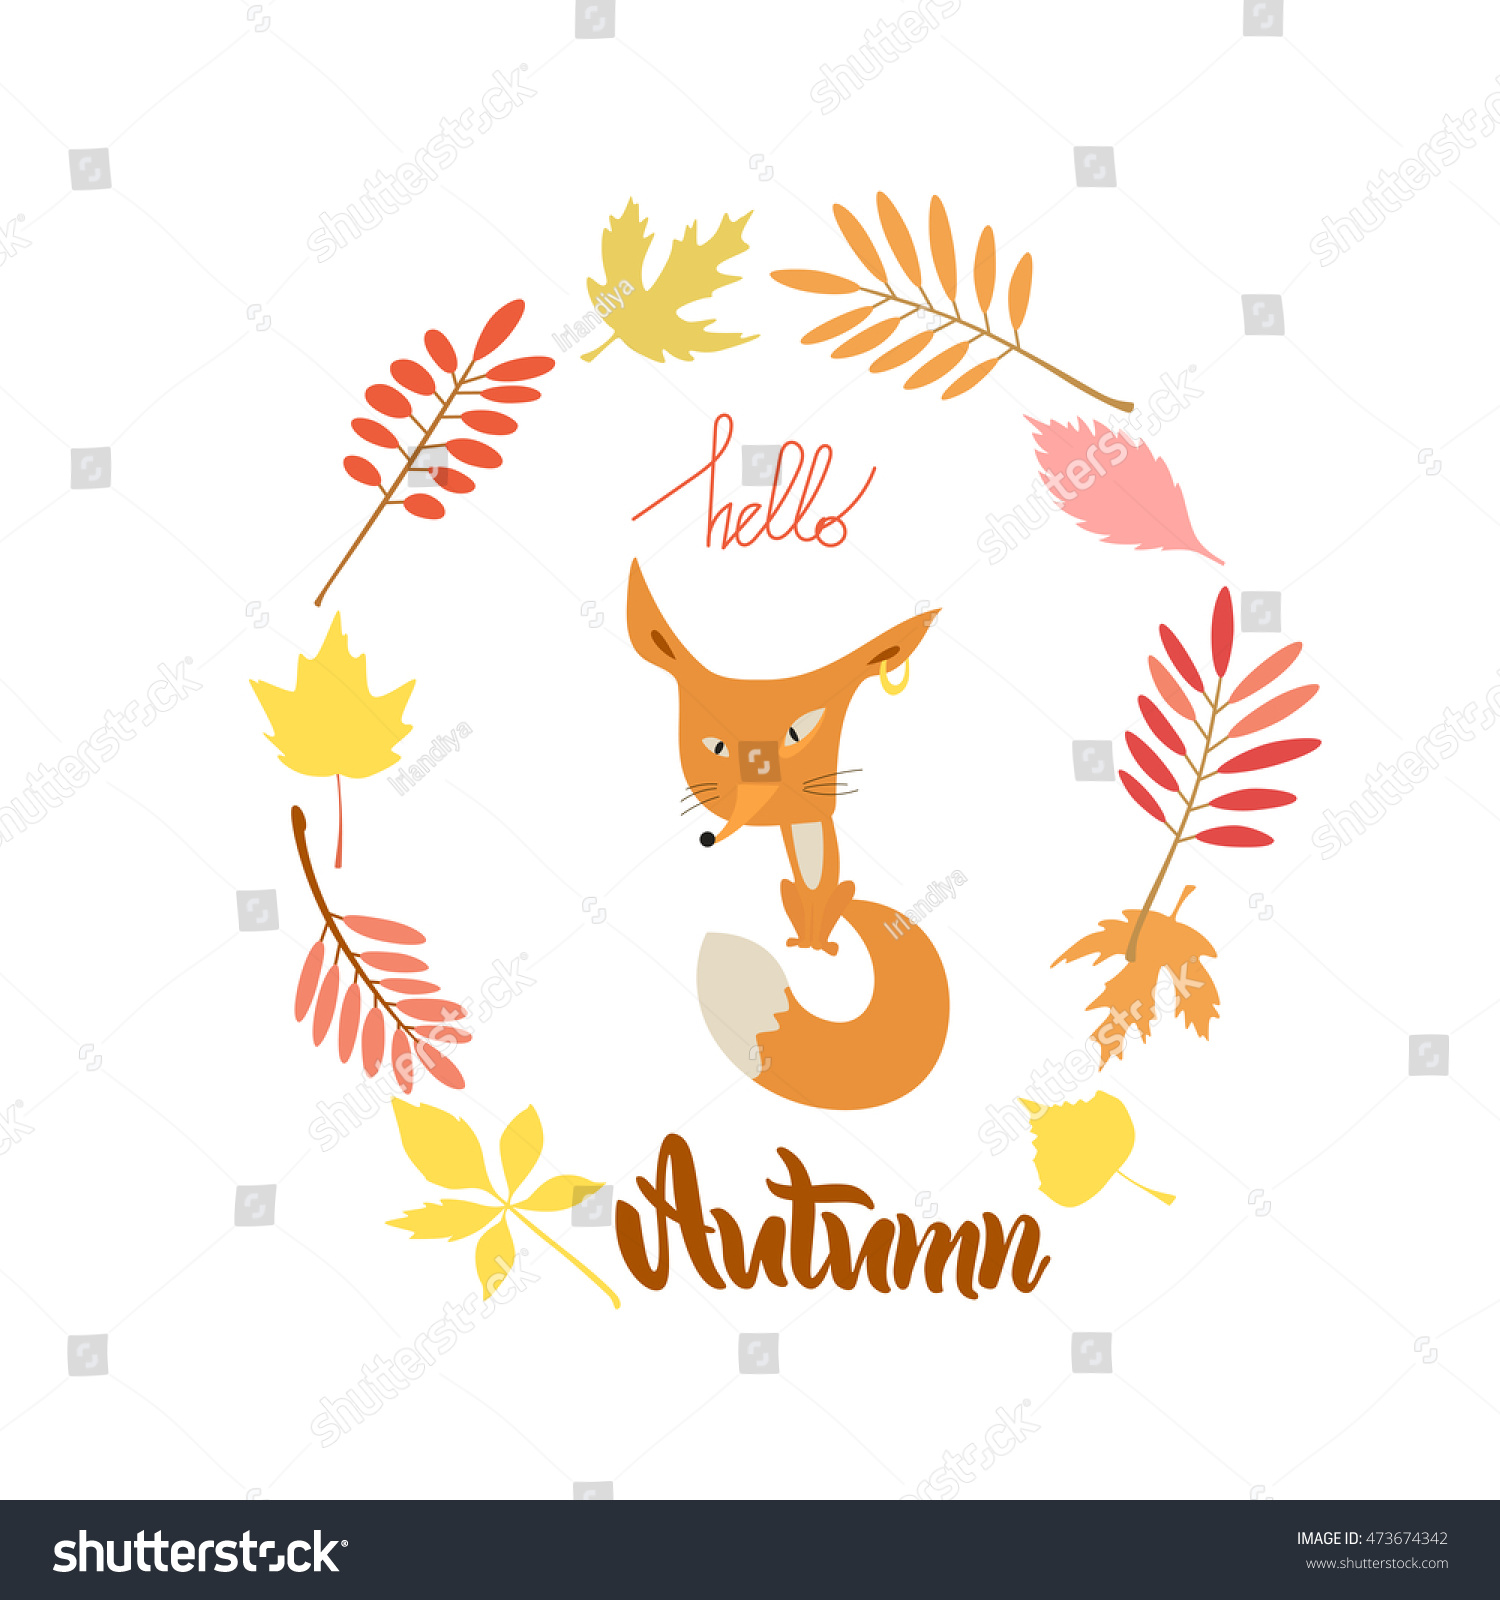 Vector Illustration Greeting Card Poster Lettering Stock Vector